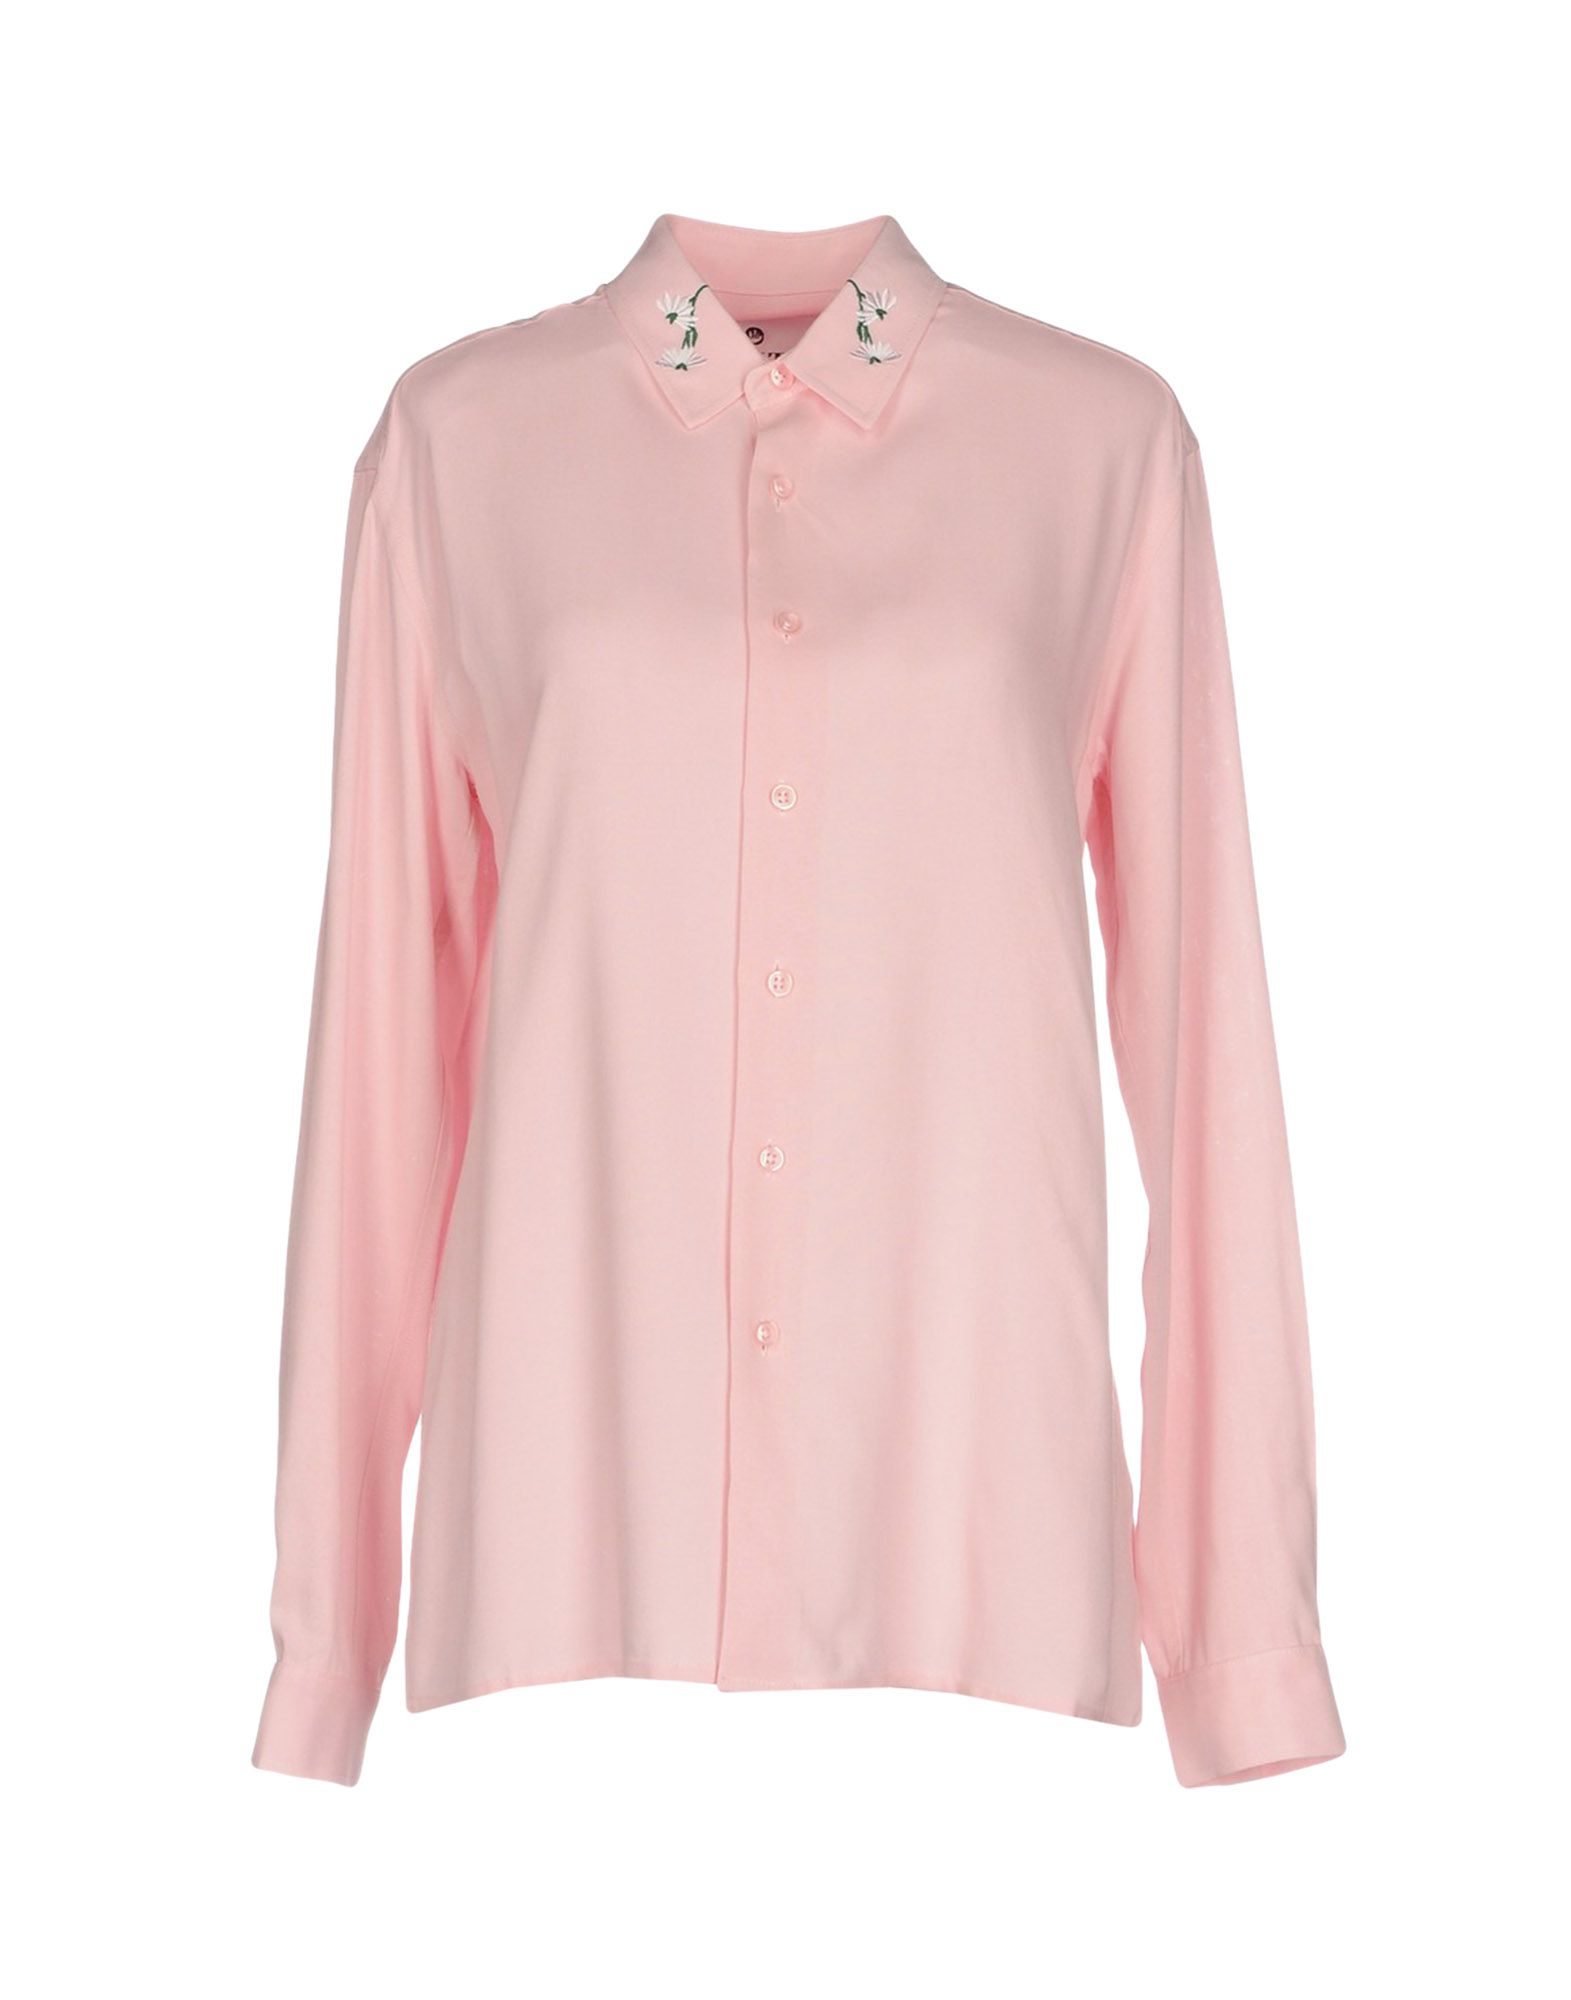 BRUTA Solid Color Shirts & Blouses in Pink